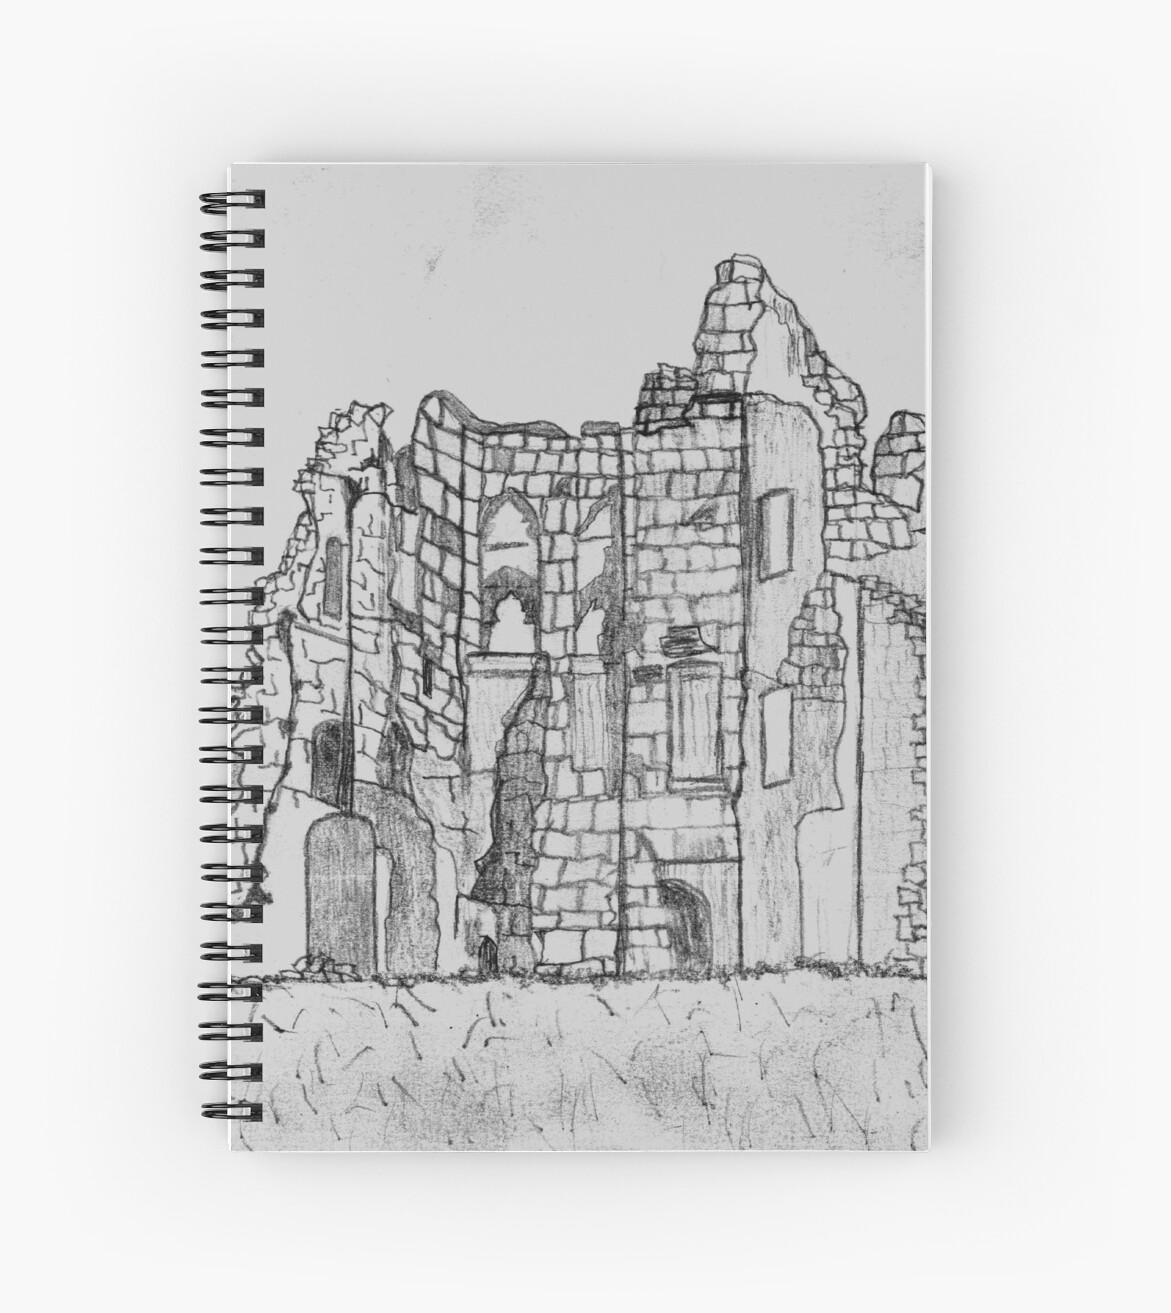 My pencil sketch of old wardour castle england destroyed in english civil war 1643